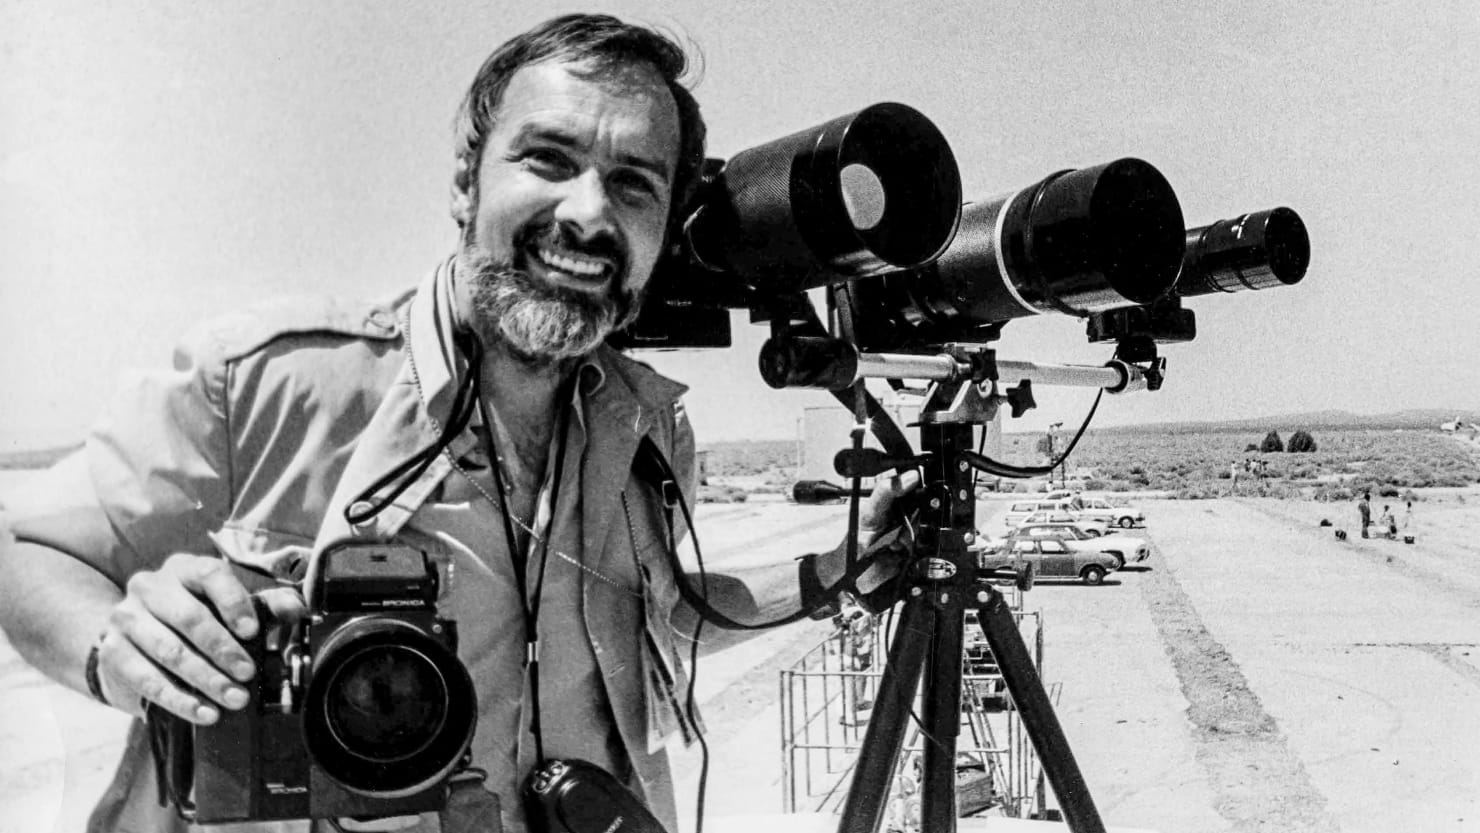 A Lost Camera Case Opens Memories of a Photojournalist's Life